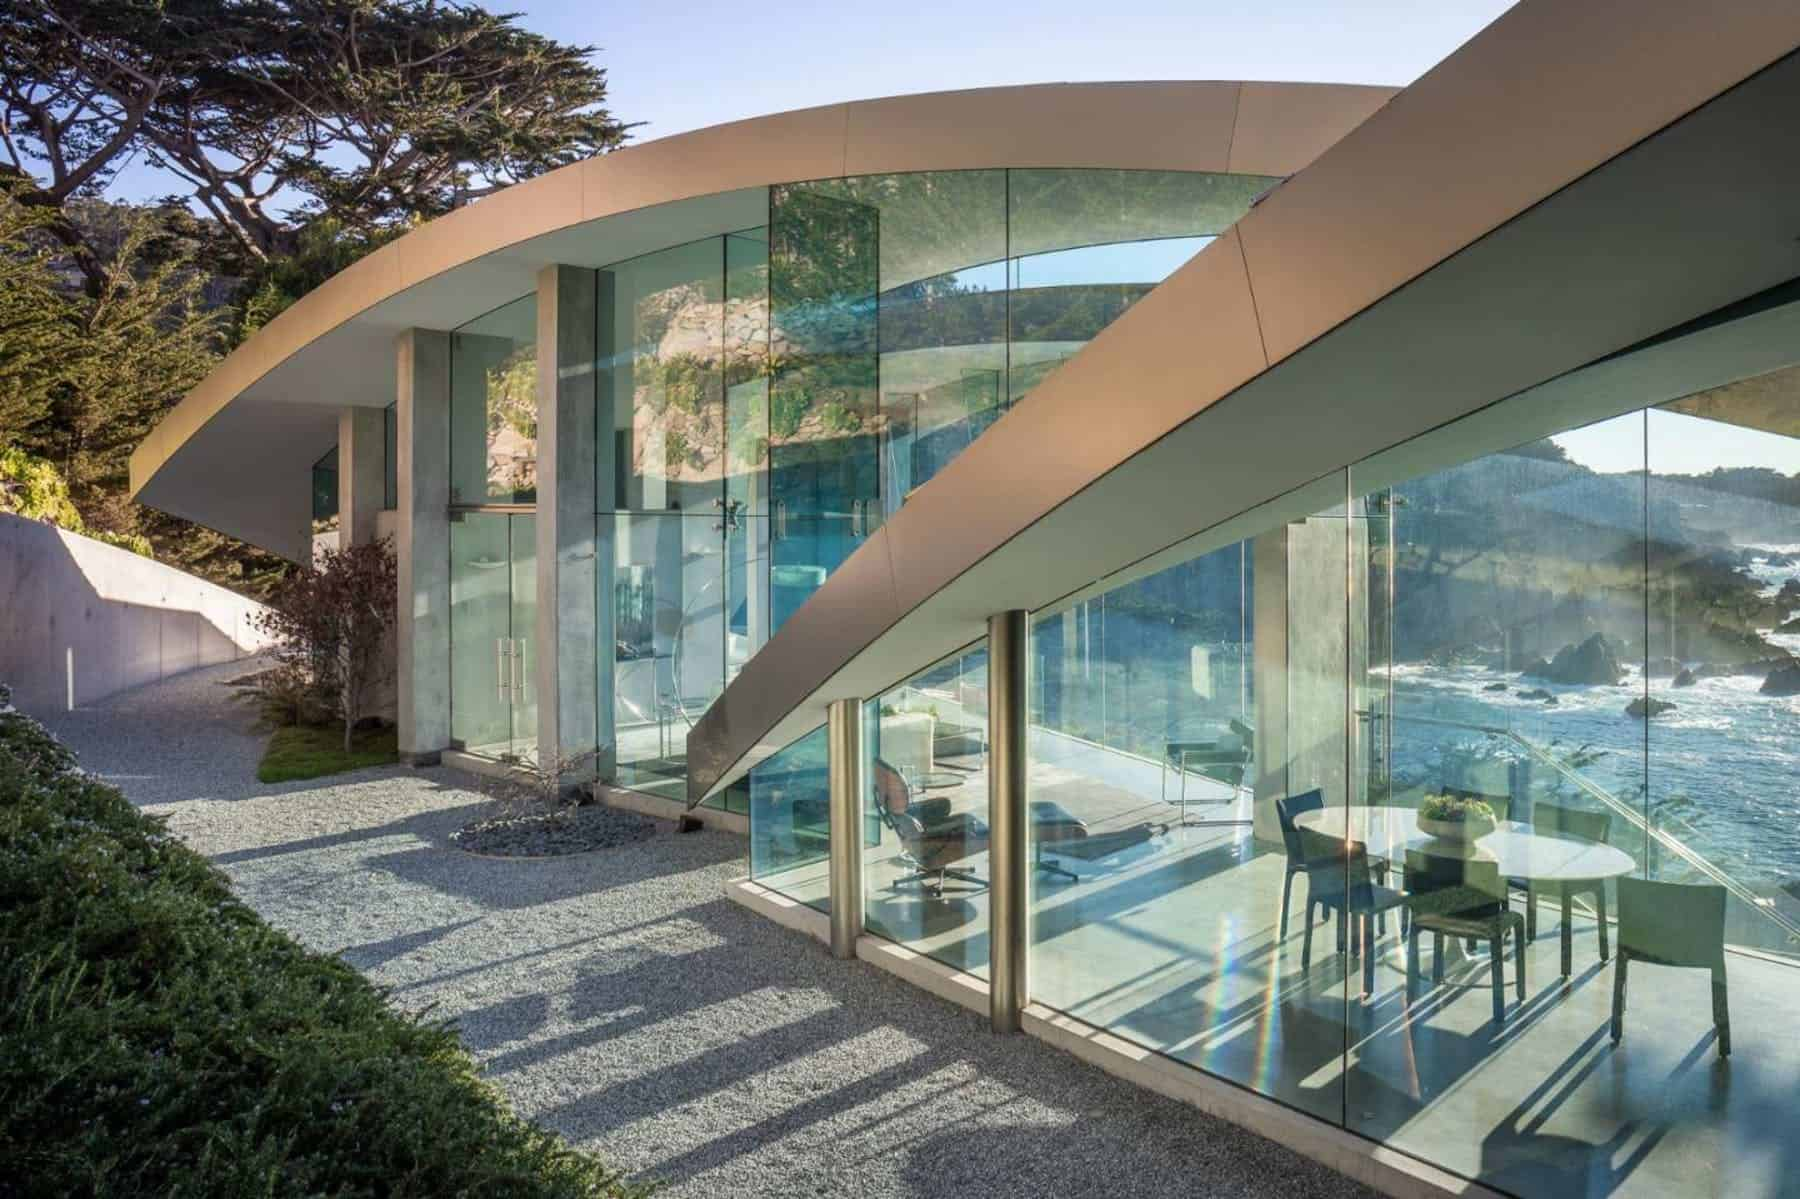 A spectacular curved-glass contemporary house that has an amazing exterior structure.